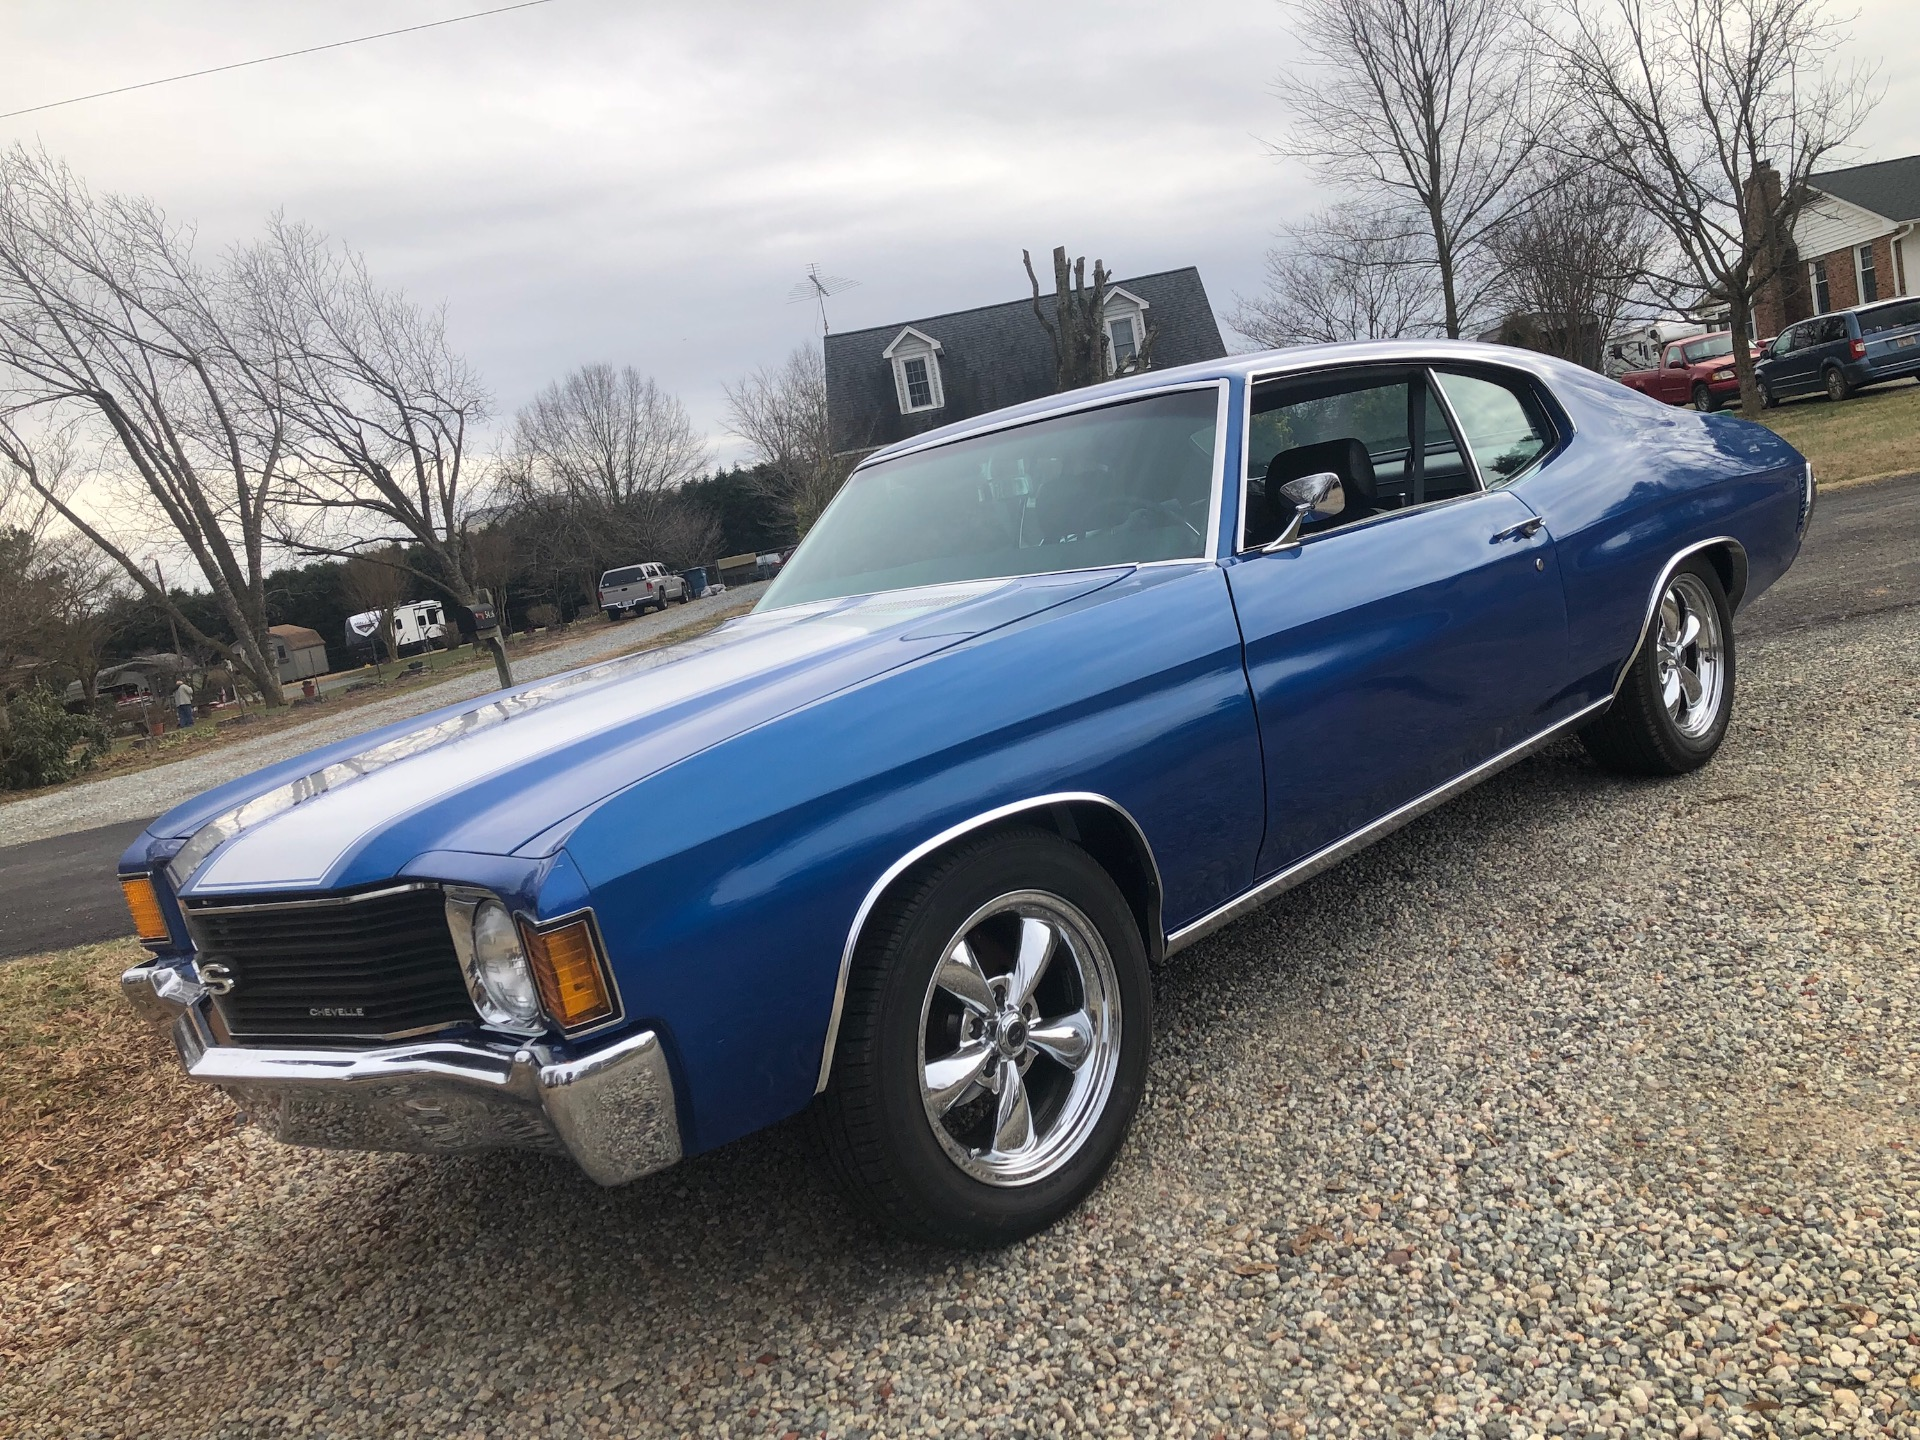 Used 1972 Chevrolet Chevelle -FRAME OFF RESTORED 2017-SS GAUGES-AIR CONDITIONING-SOLID MUSCLE CAR-VIDEO | Mundelein, IL